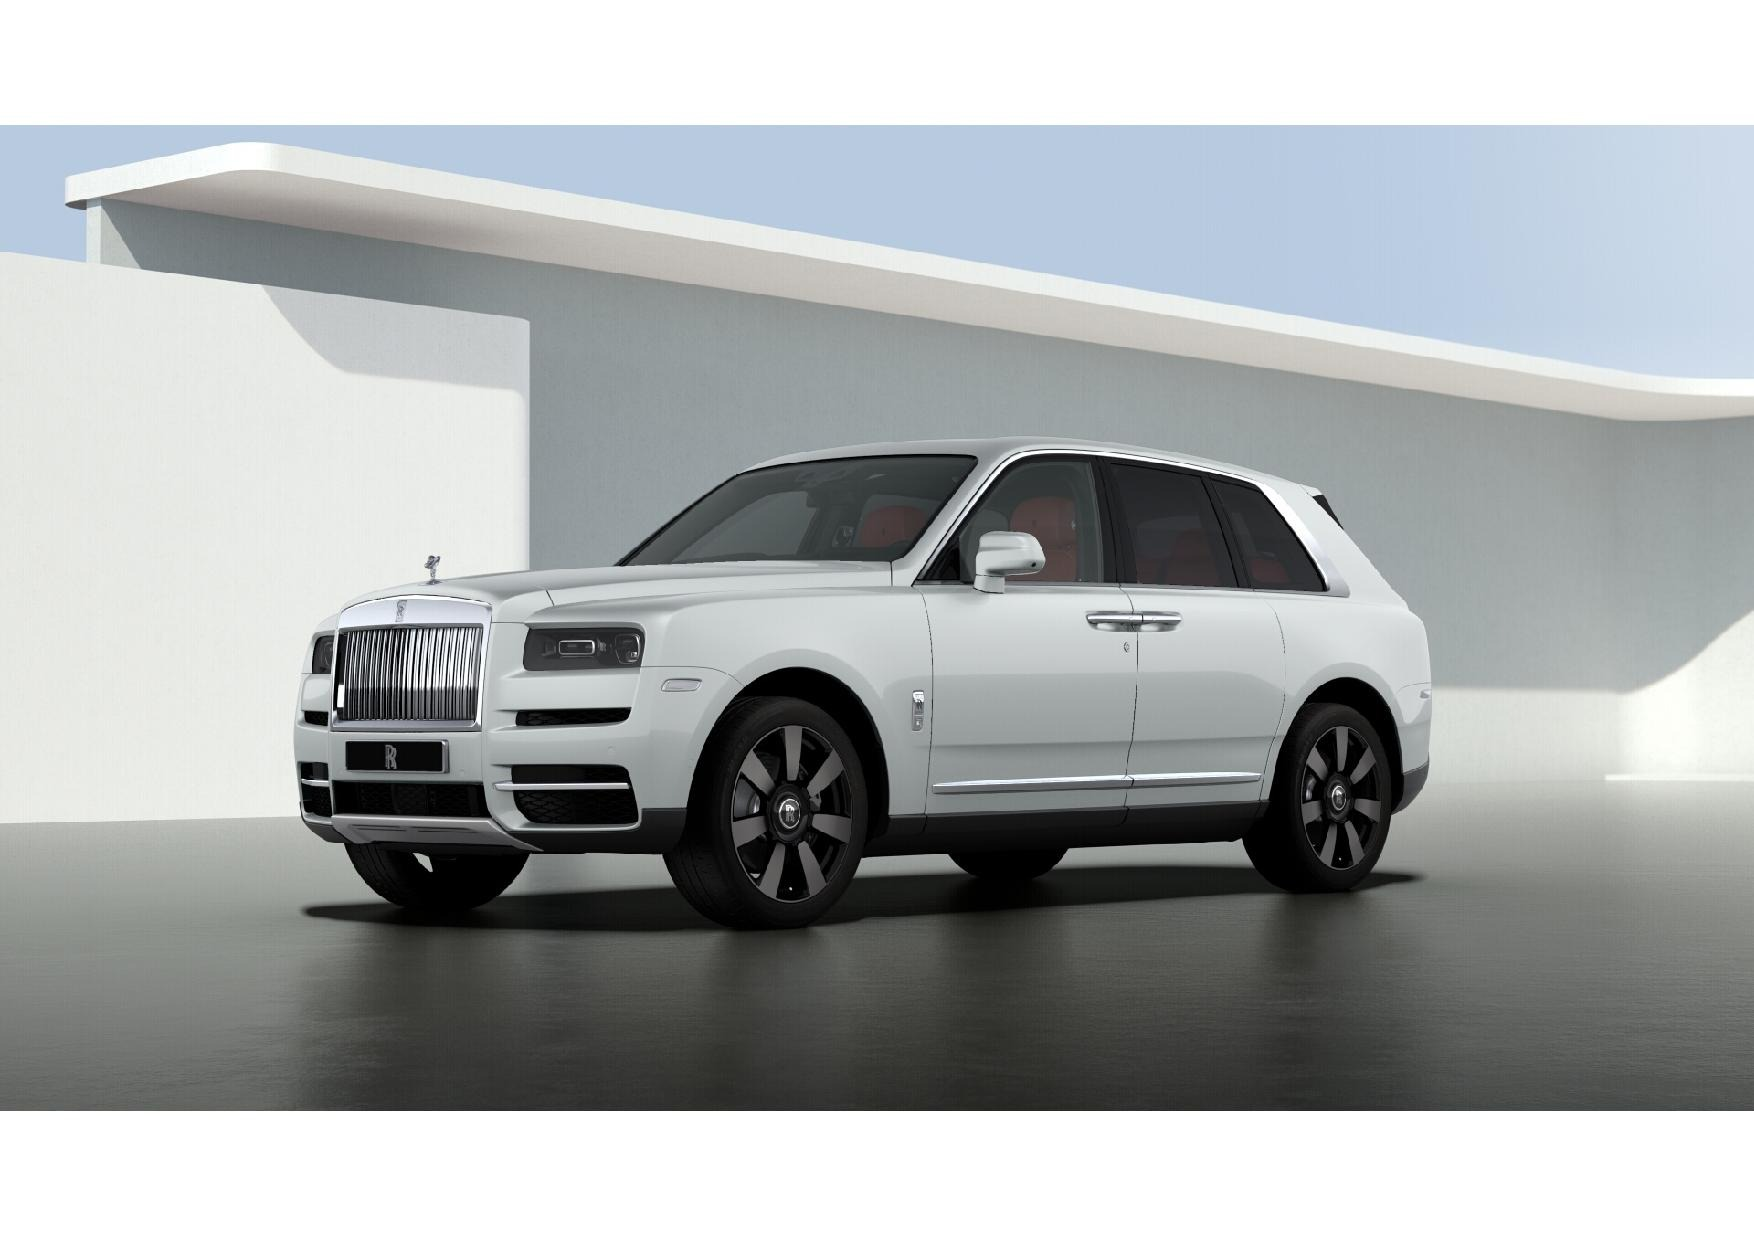 New 2021 Rolls-Royce Cullinan for sale $376,925 at McLaren Greenwich in Greenwich CT 06830 1